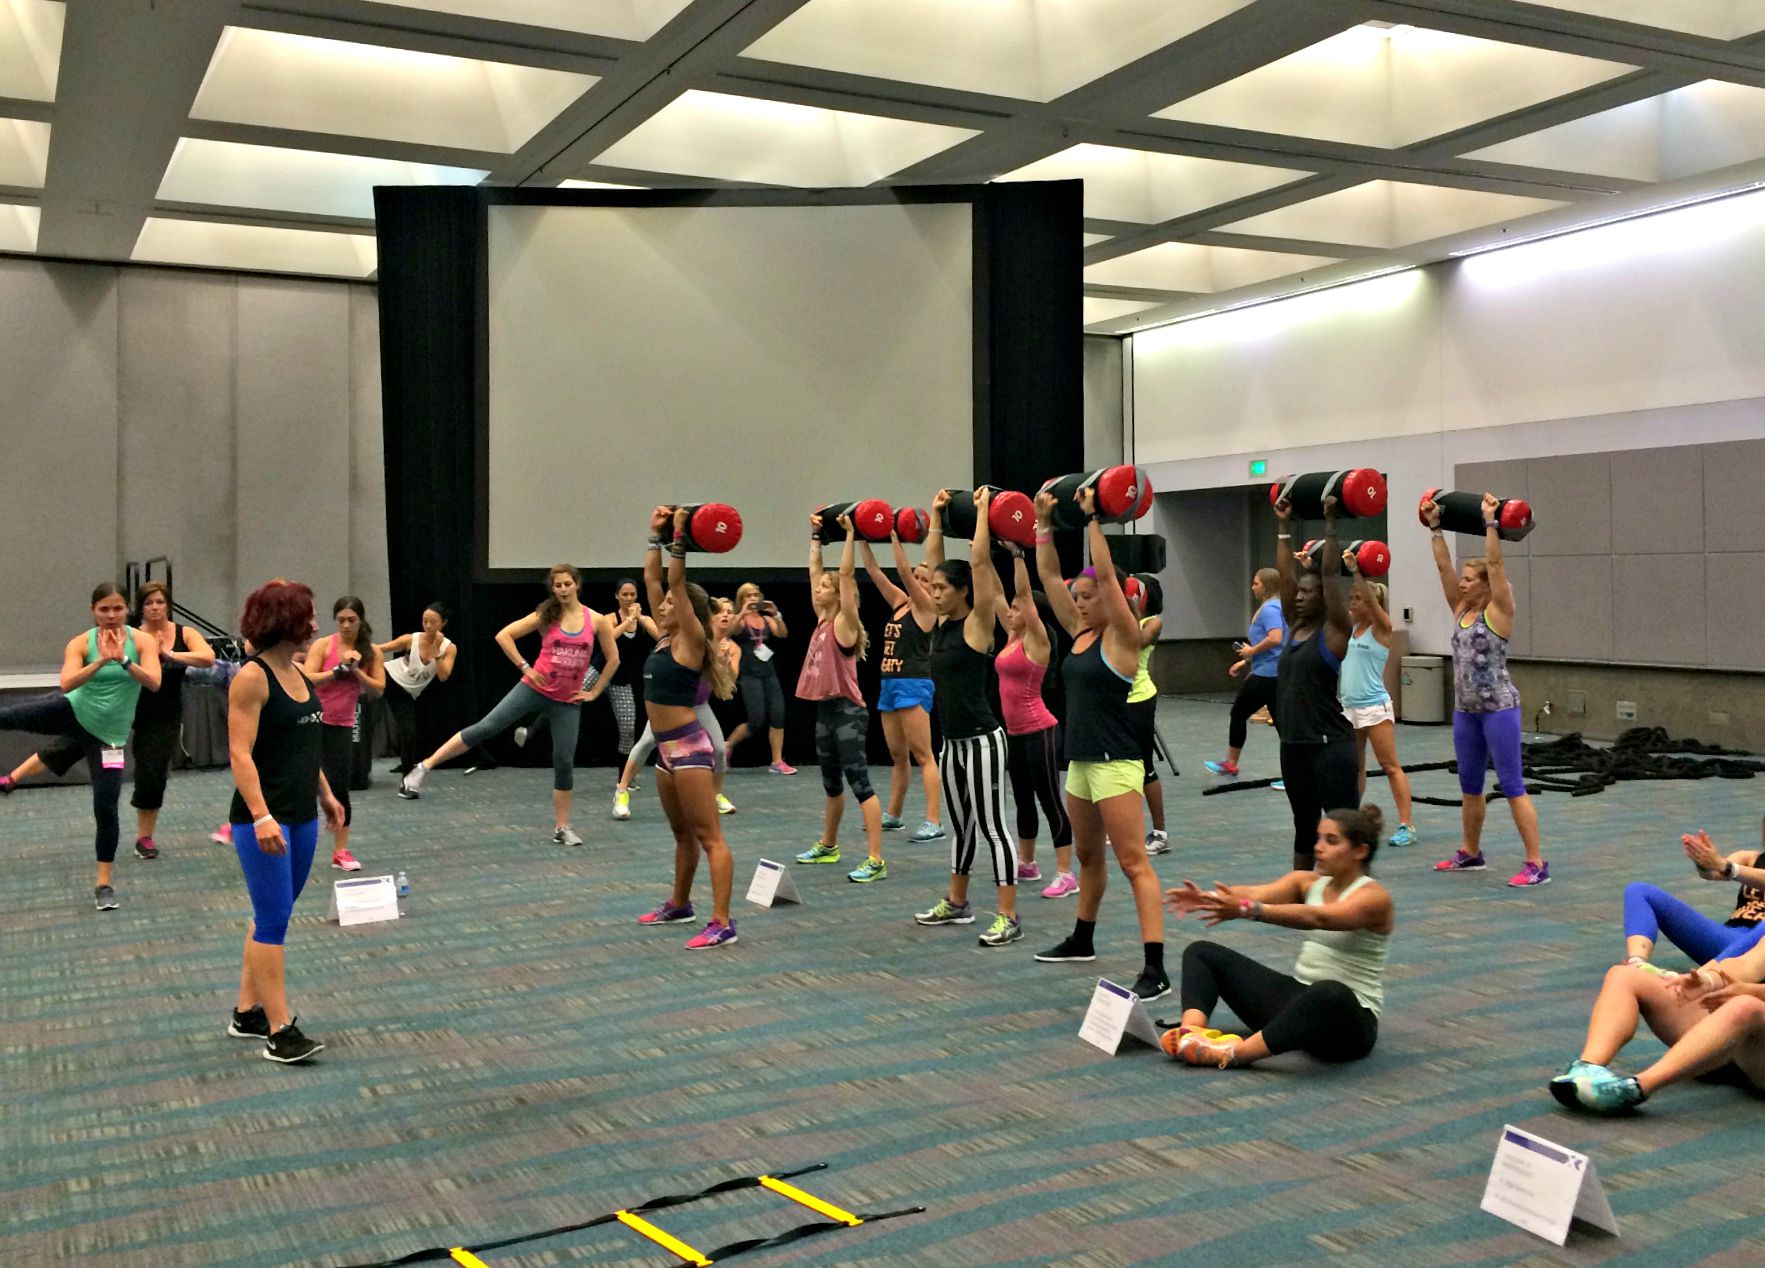 HIGH X workout with Gabby Reece